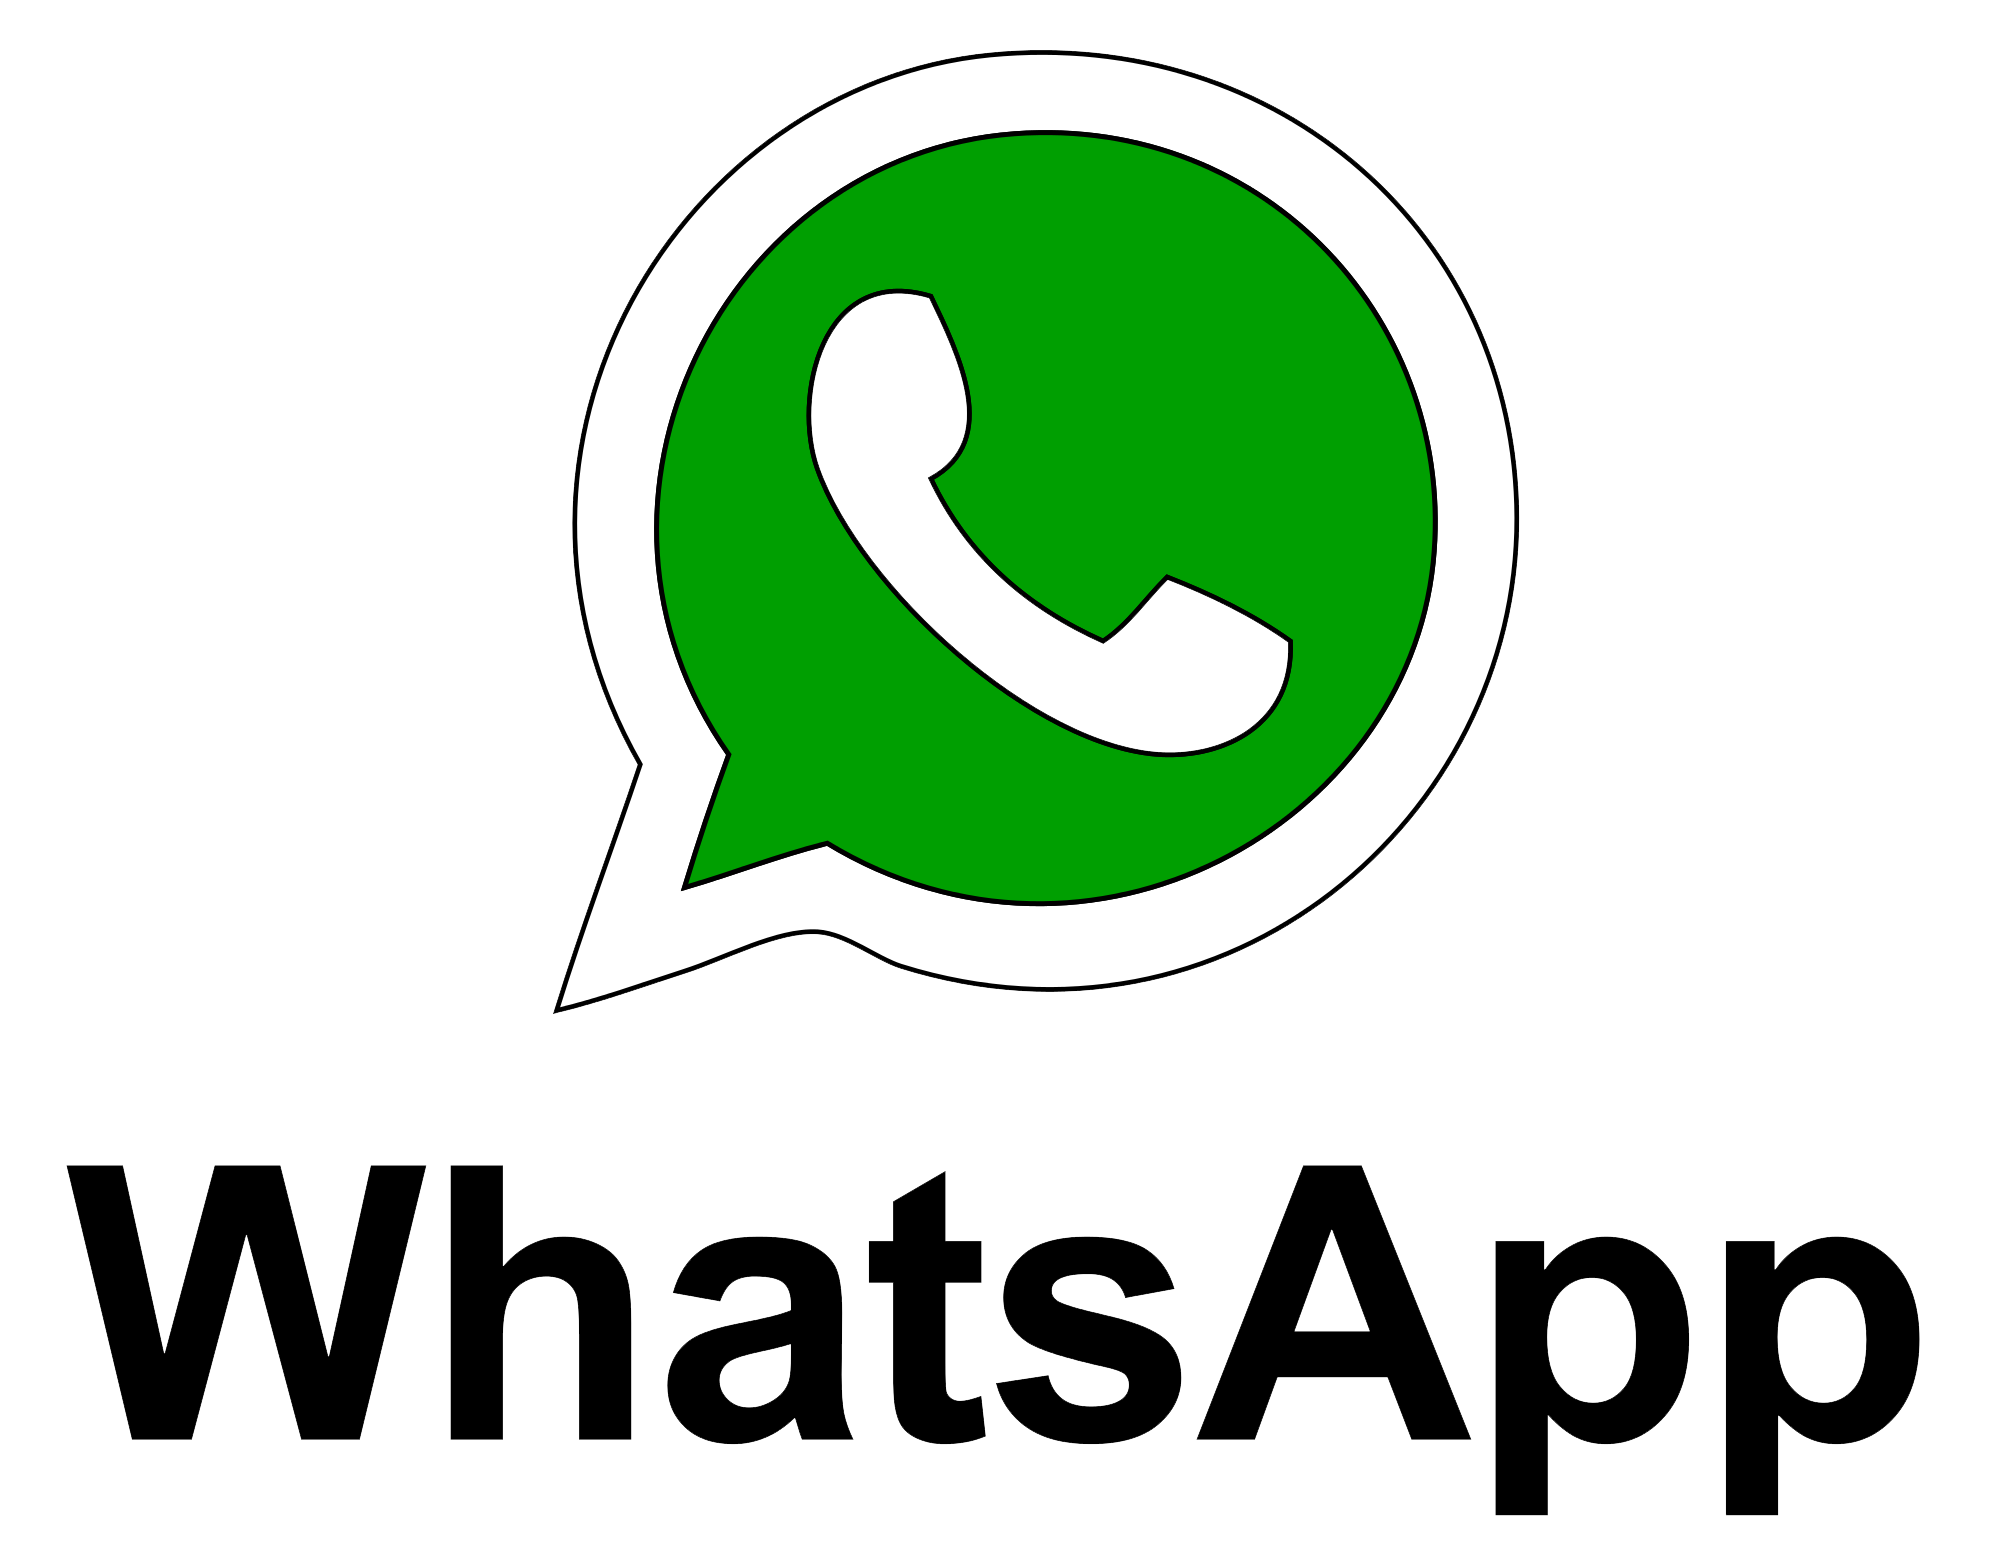 whatsapp contact image